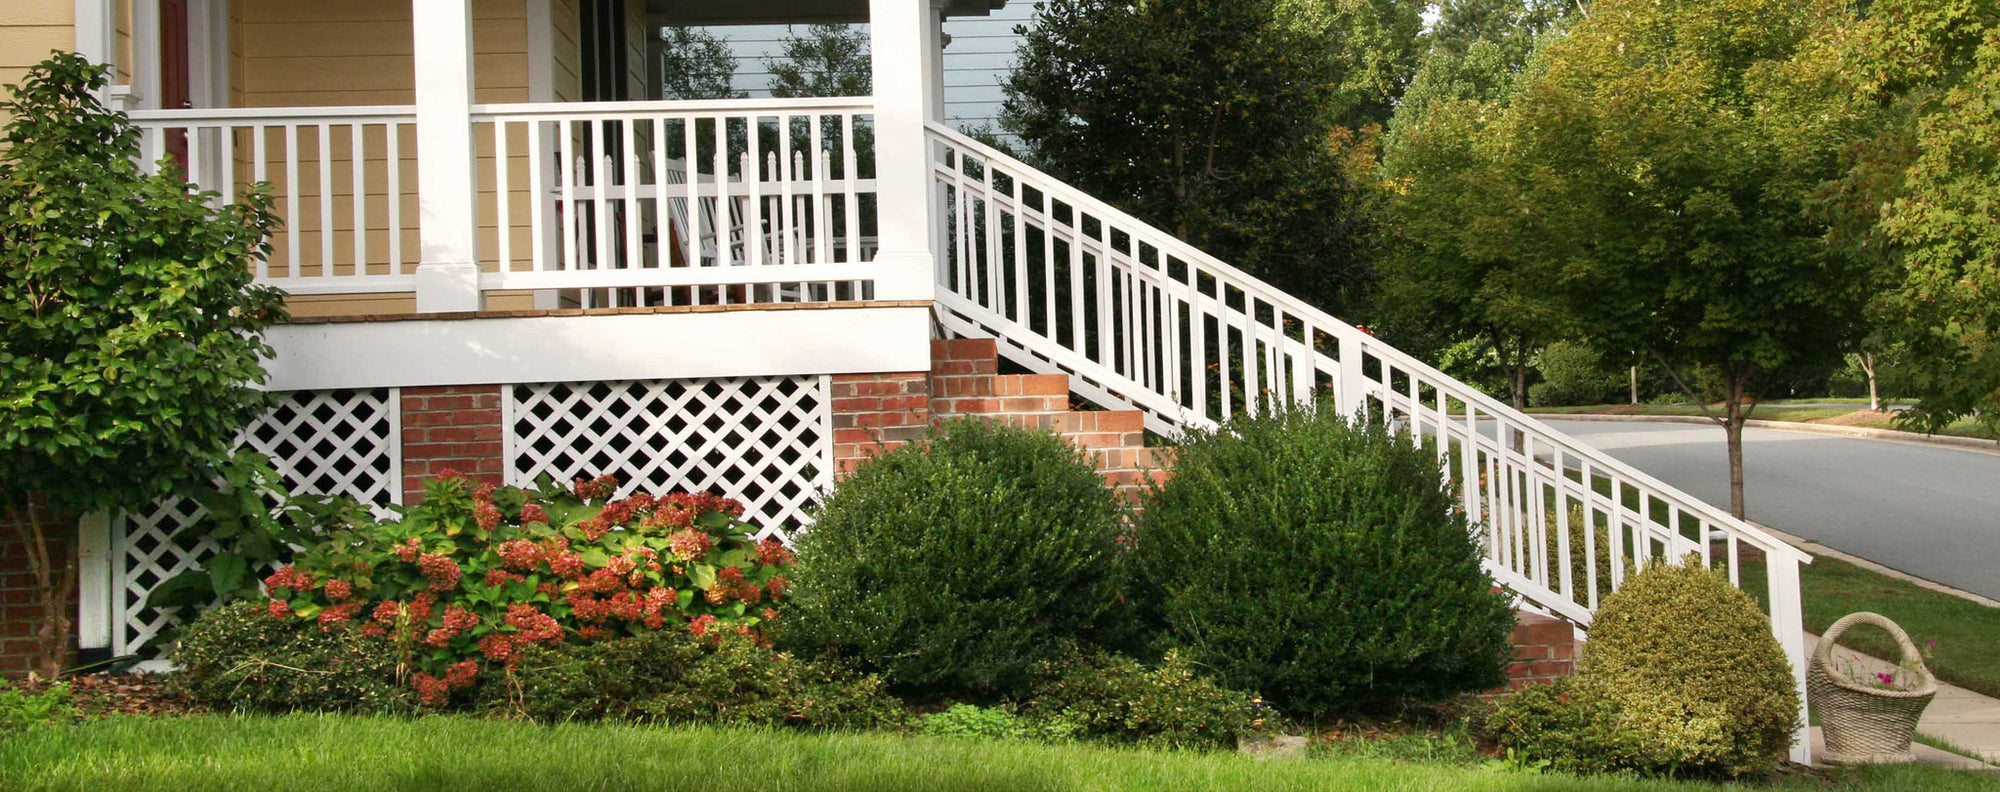 Adding Exterior Handrails – It Only Takes One Step to Fall